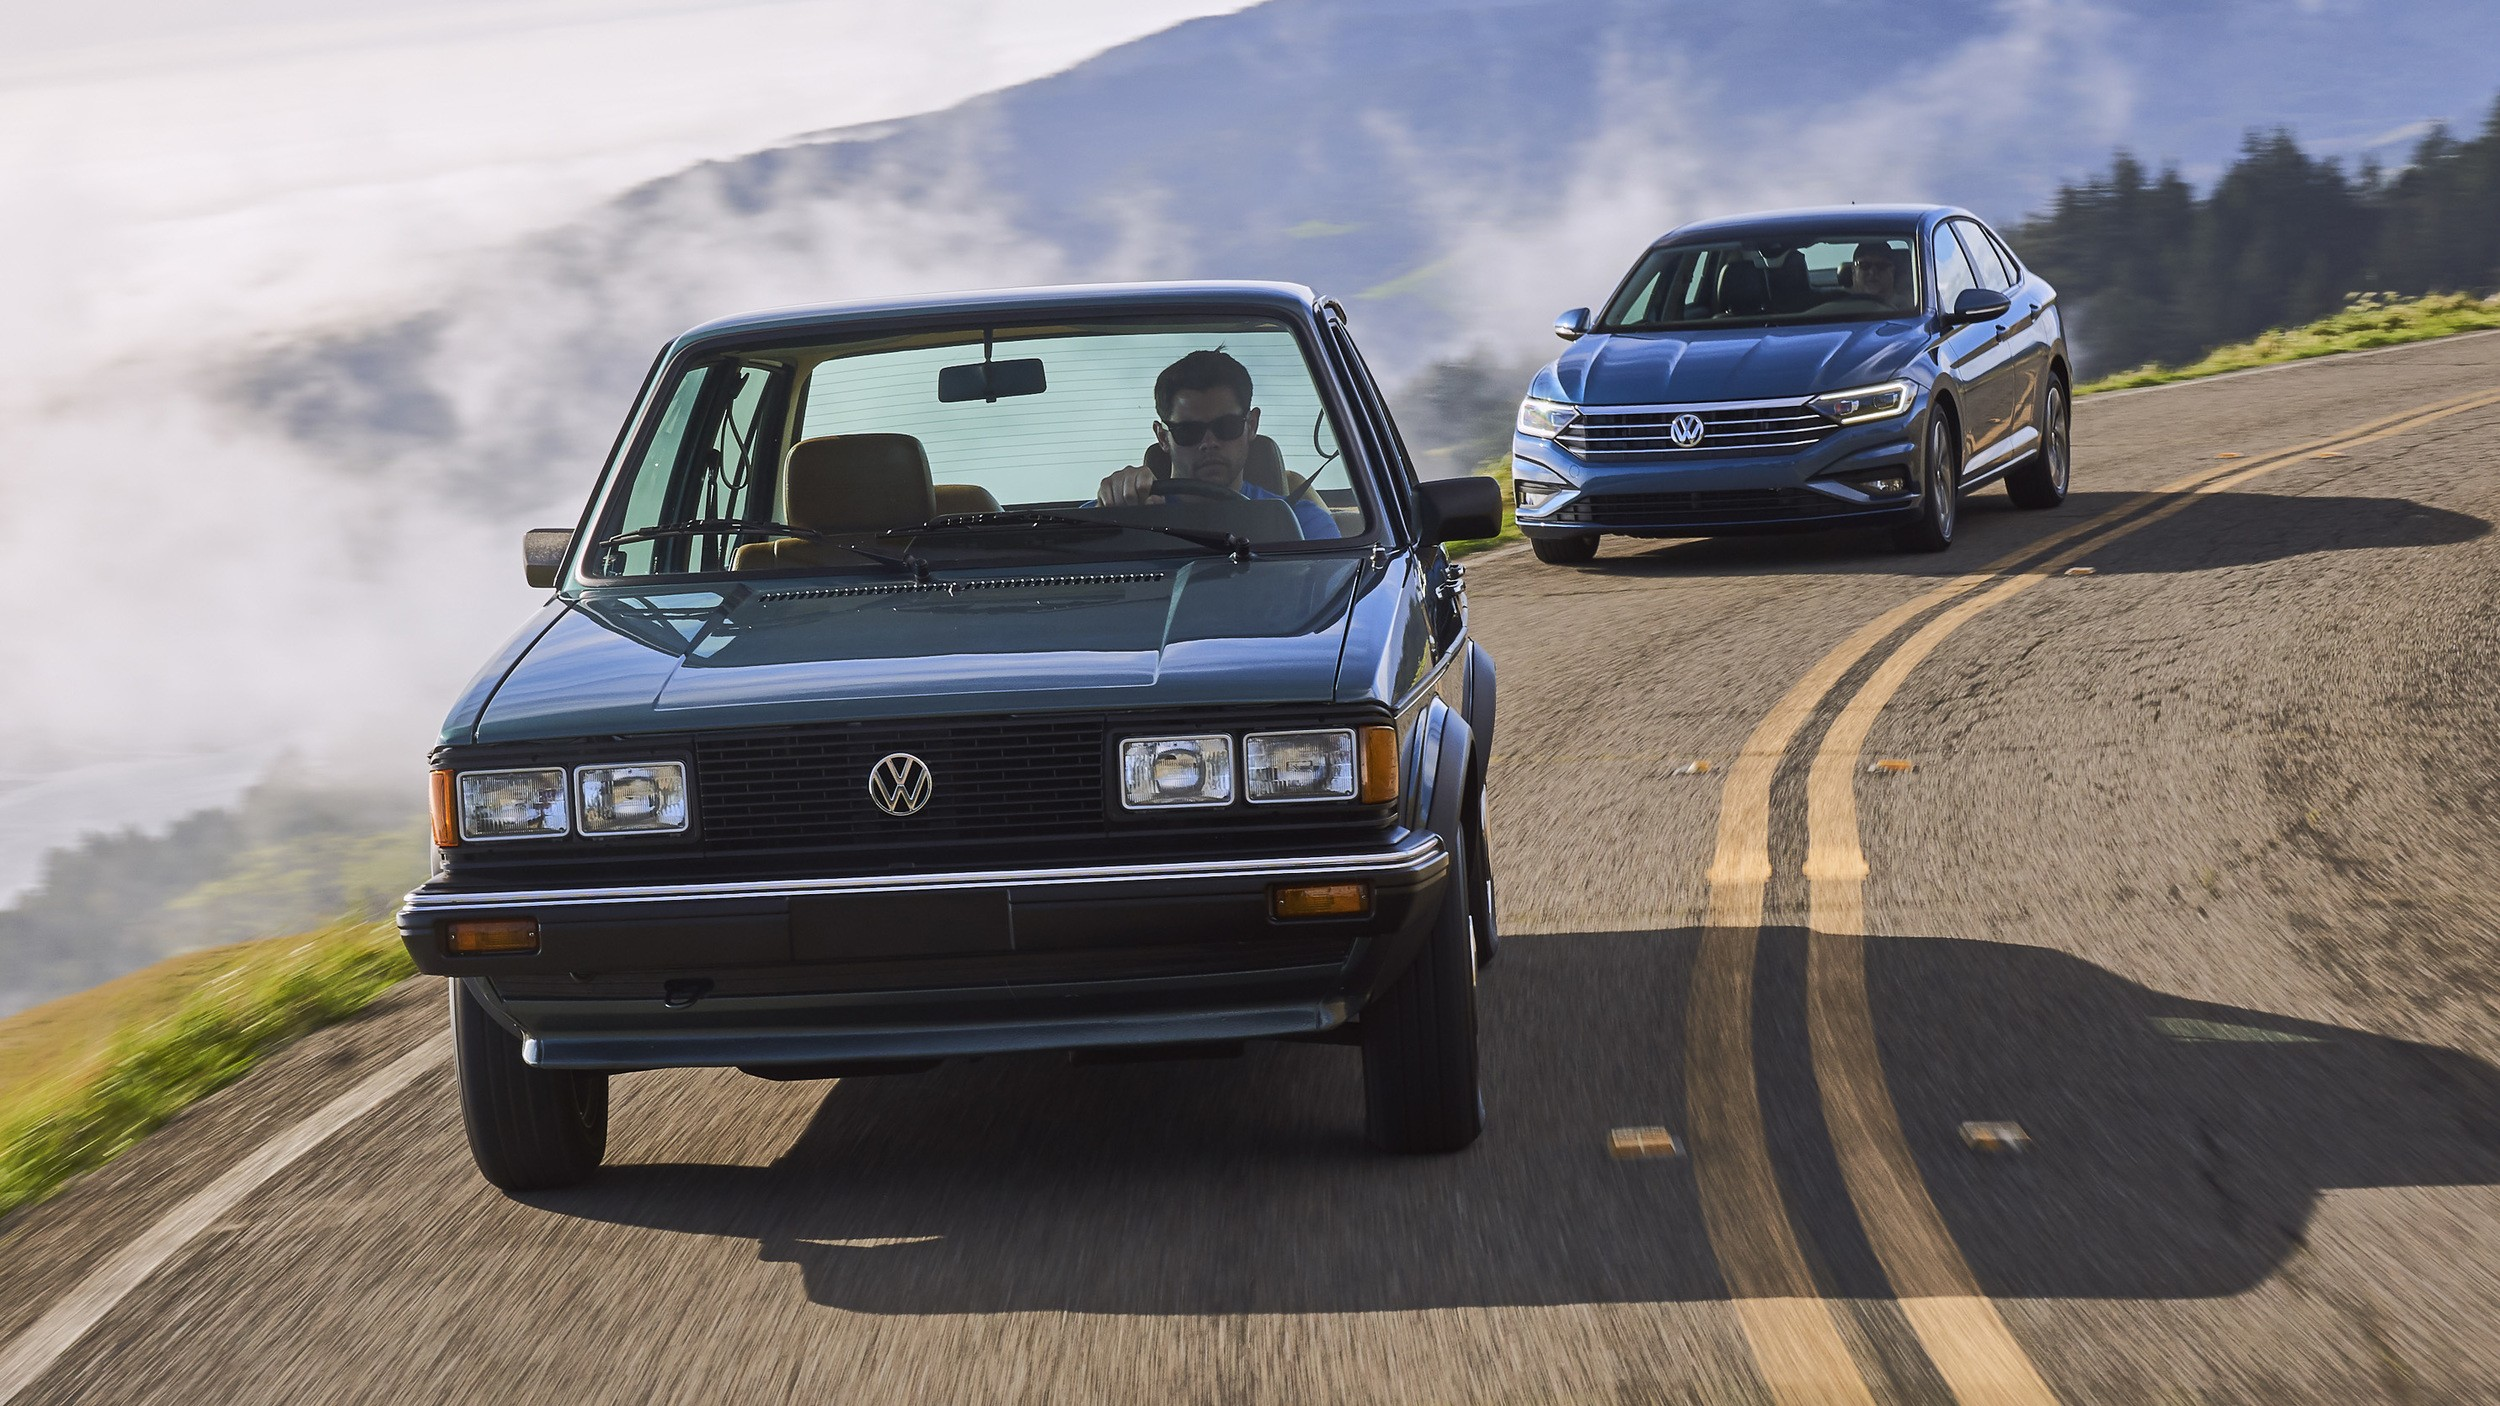 2019 Volkswagen Jetta Meets the 1982 Original - autoevolution